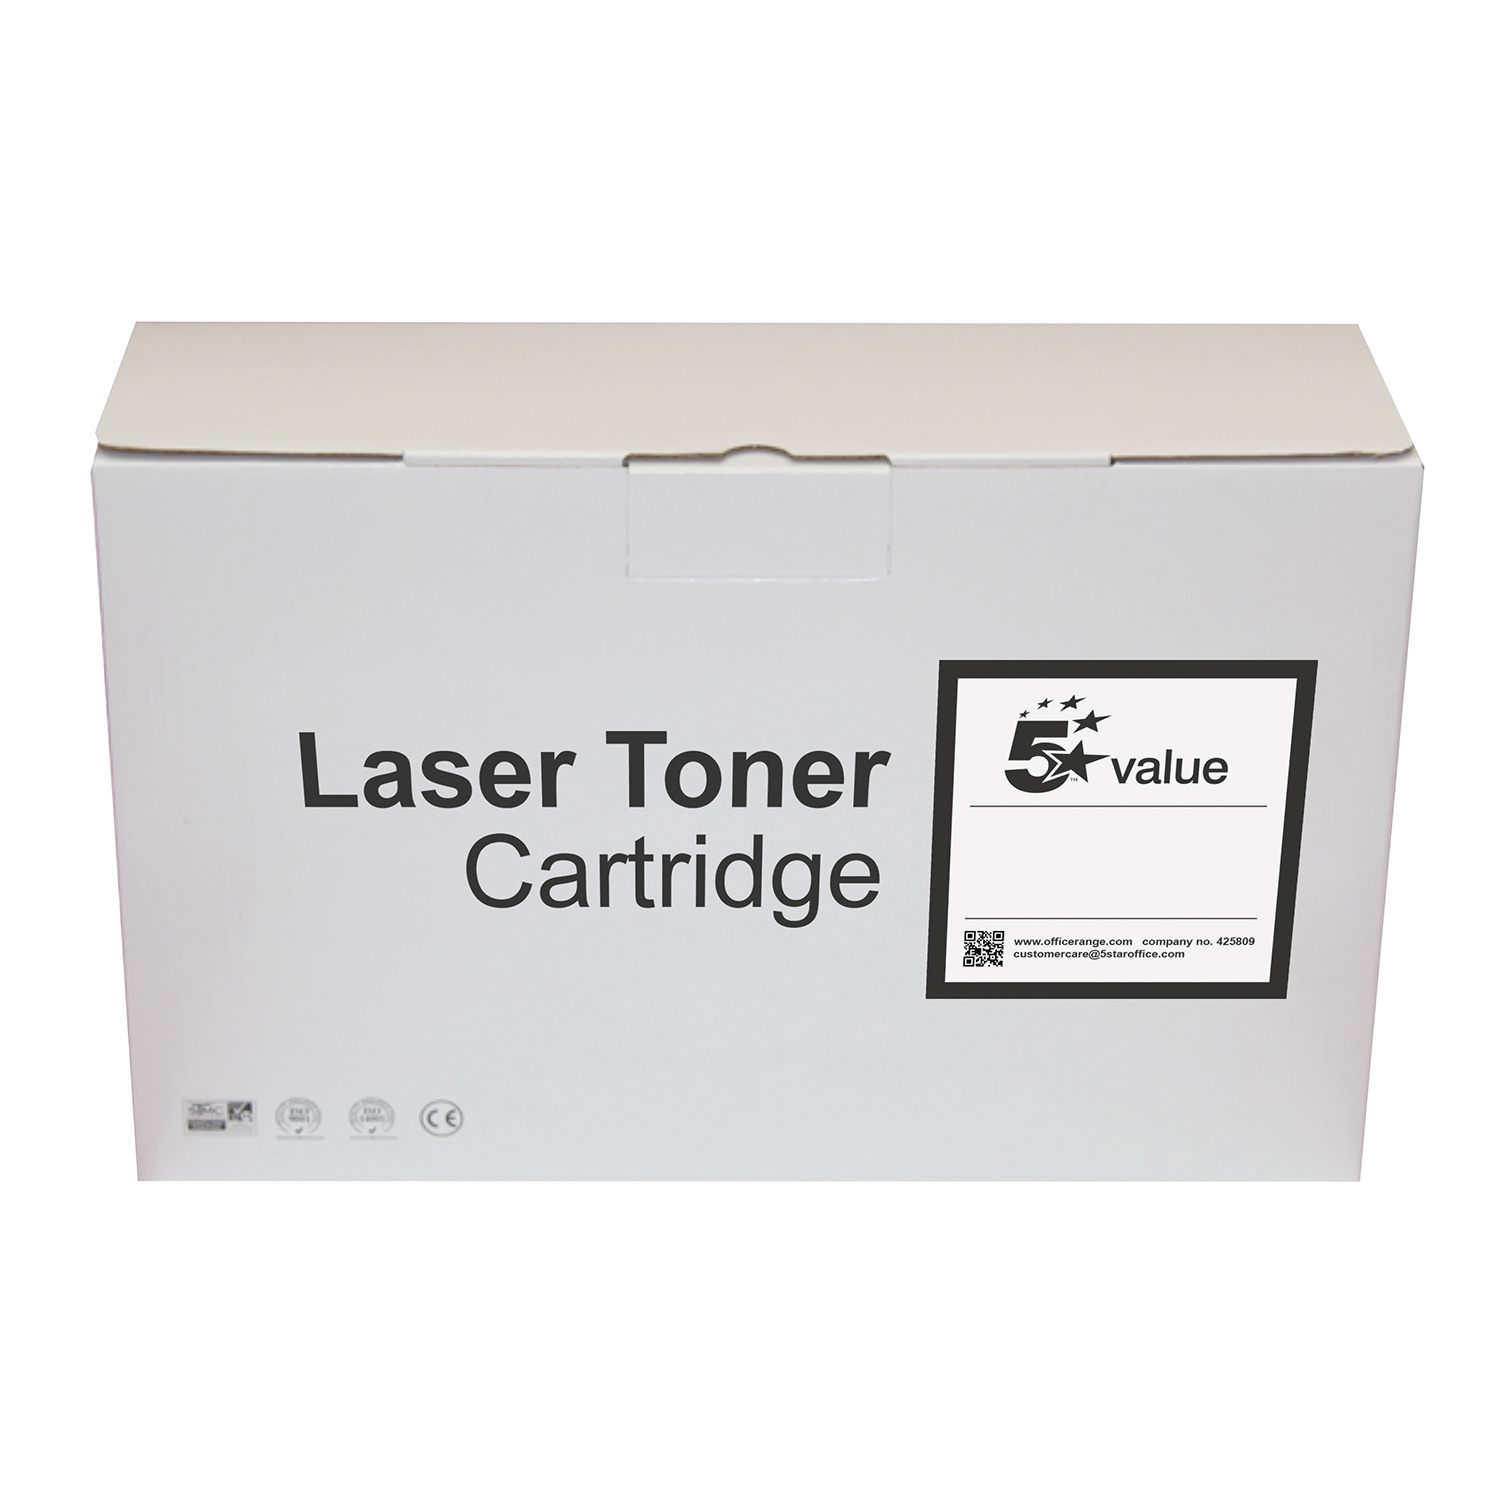 5 Star Value HP Q6470A Toner Cartridge Black